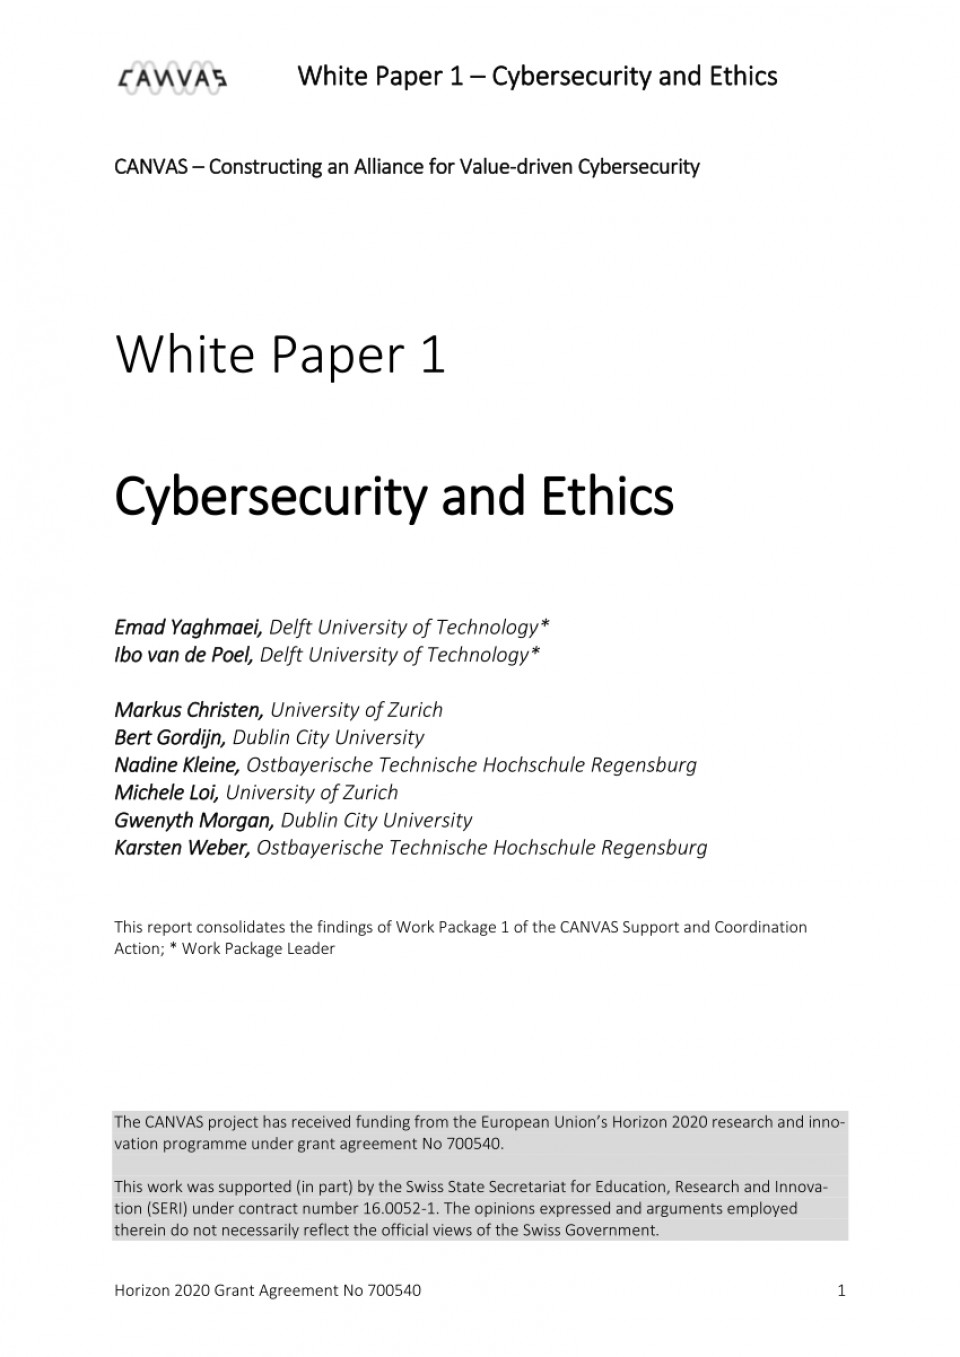 008 Research Paper Largepreview Cyber Security Impressive Outline 960